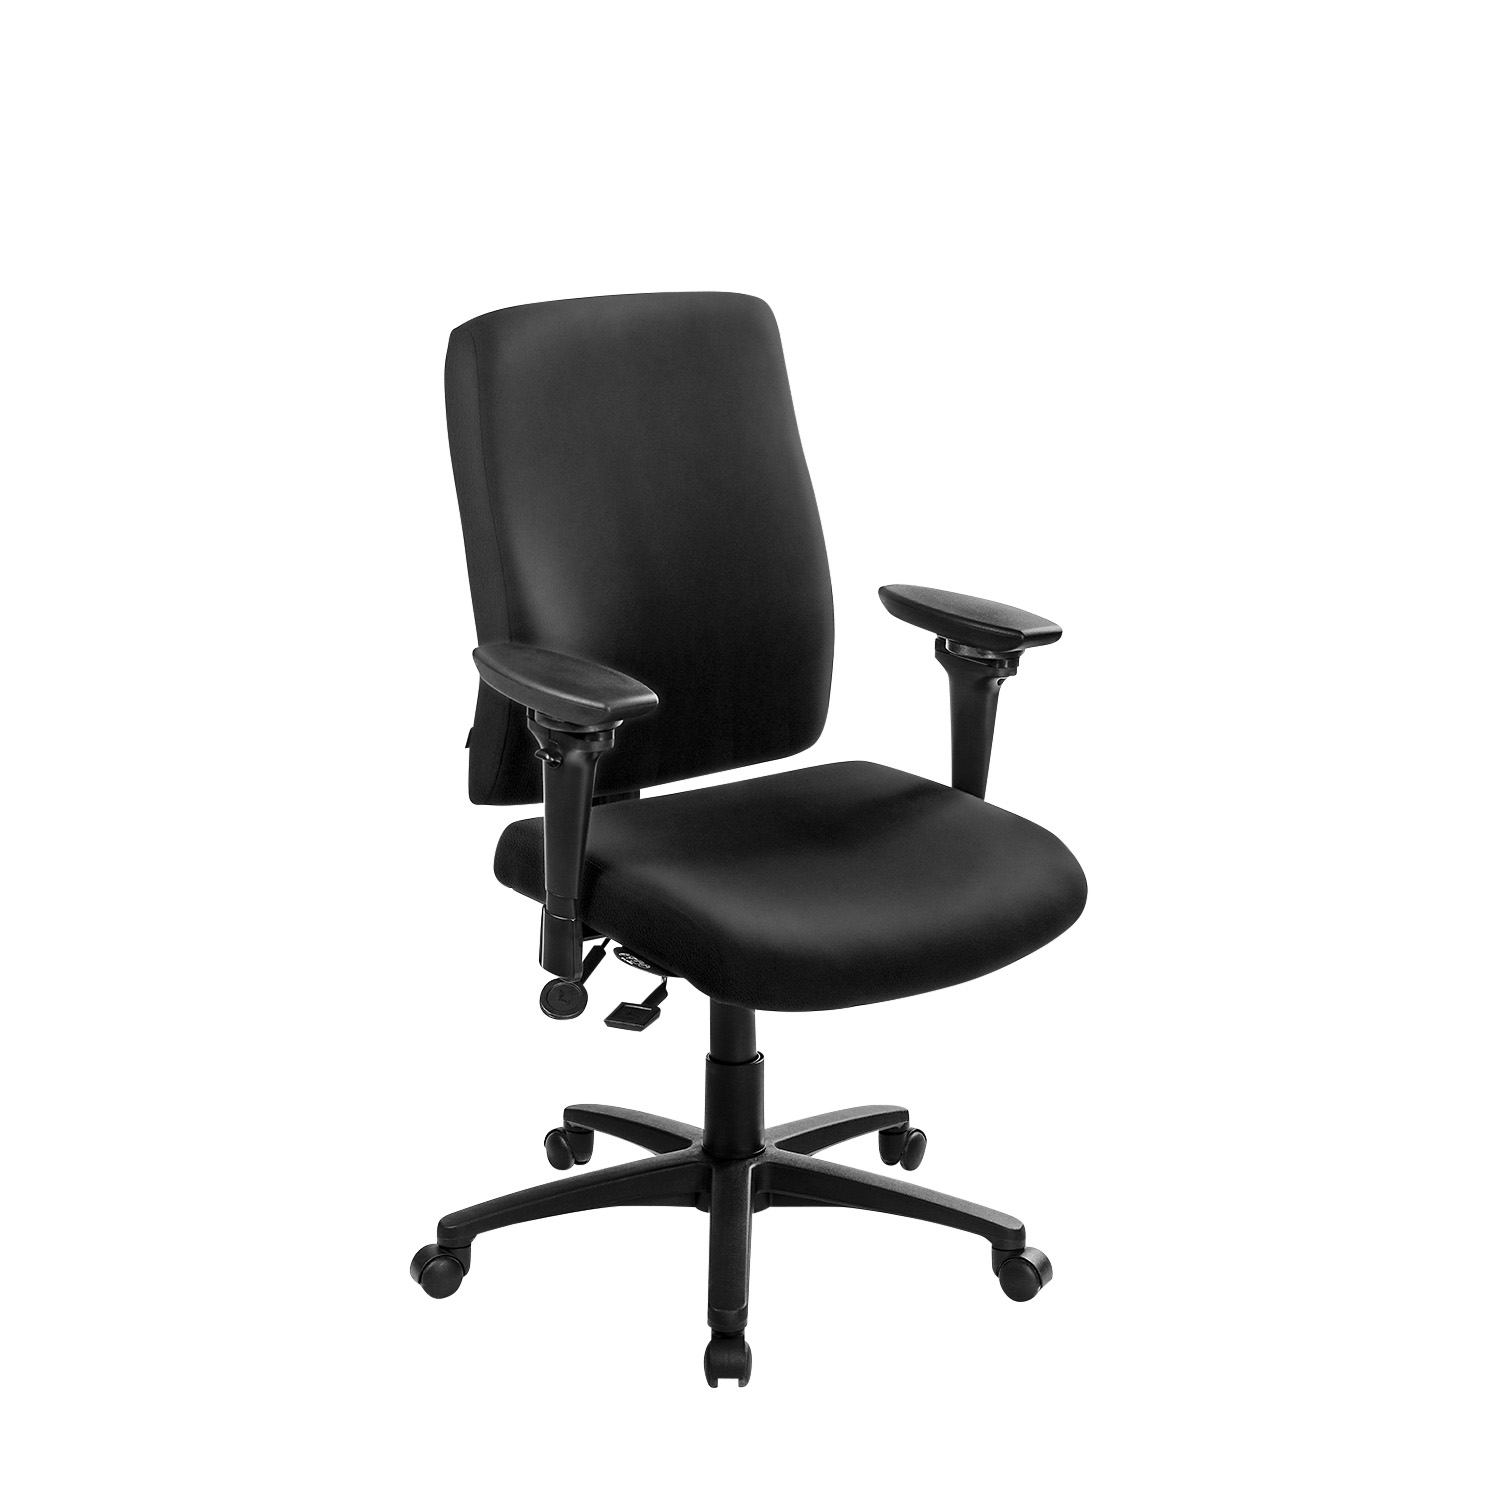 officemax ergonomic chair steelcase parts ergocentric ucentric mid-back task   grand & toy